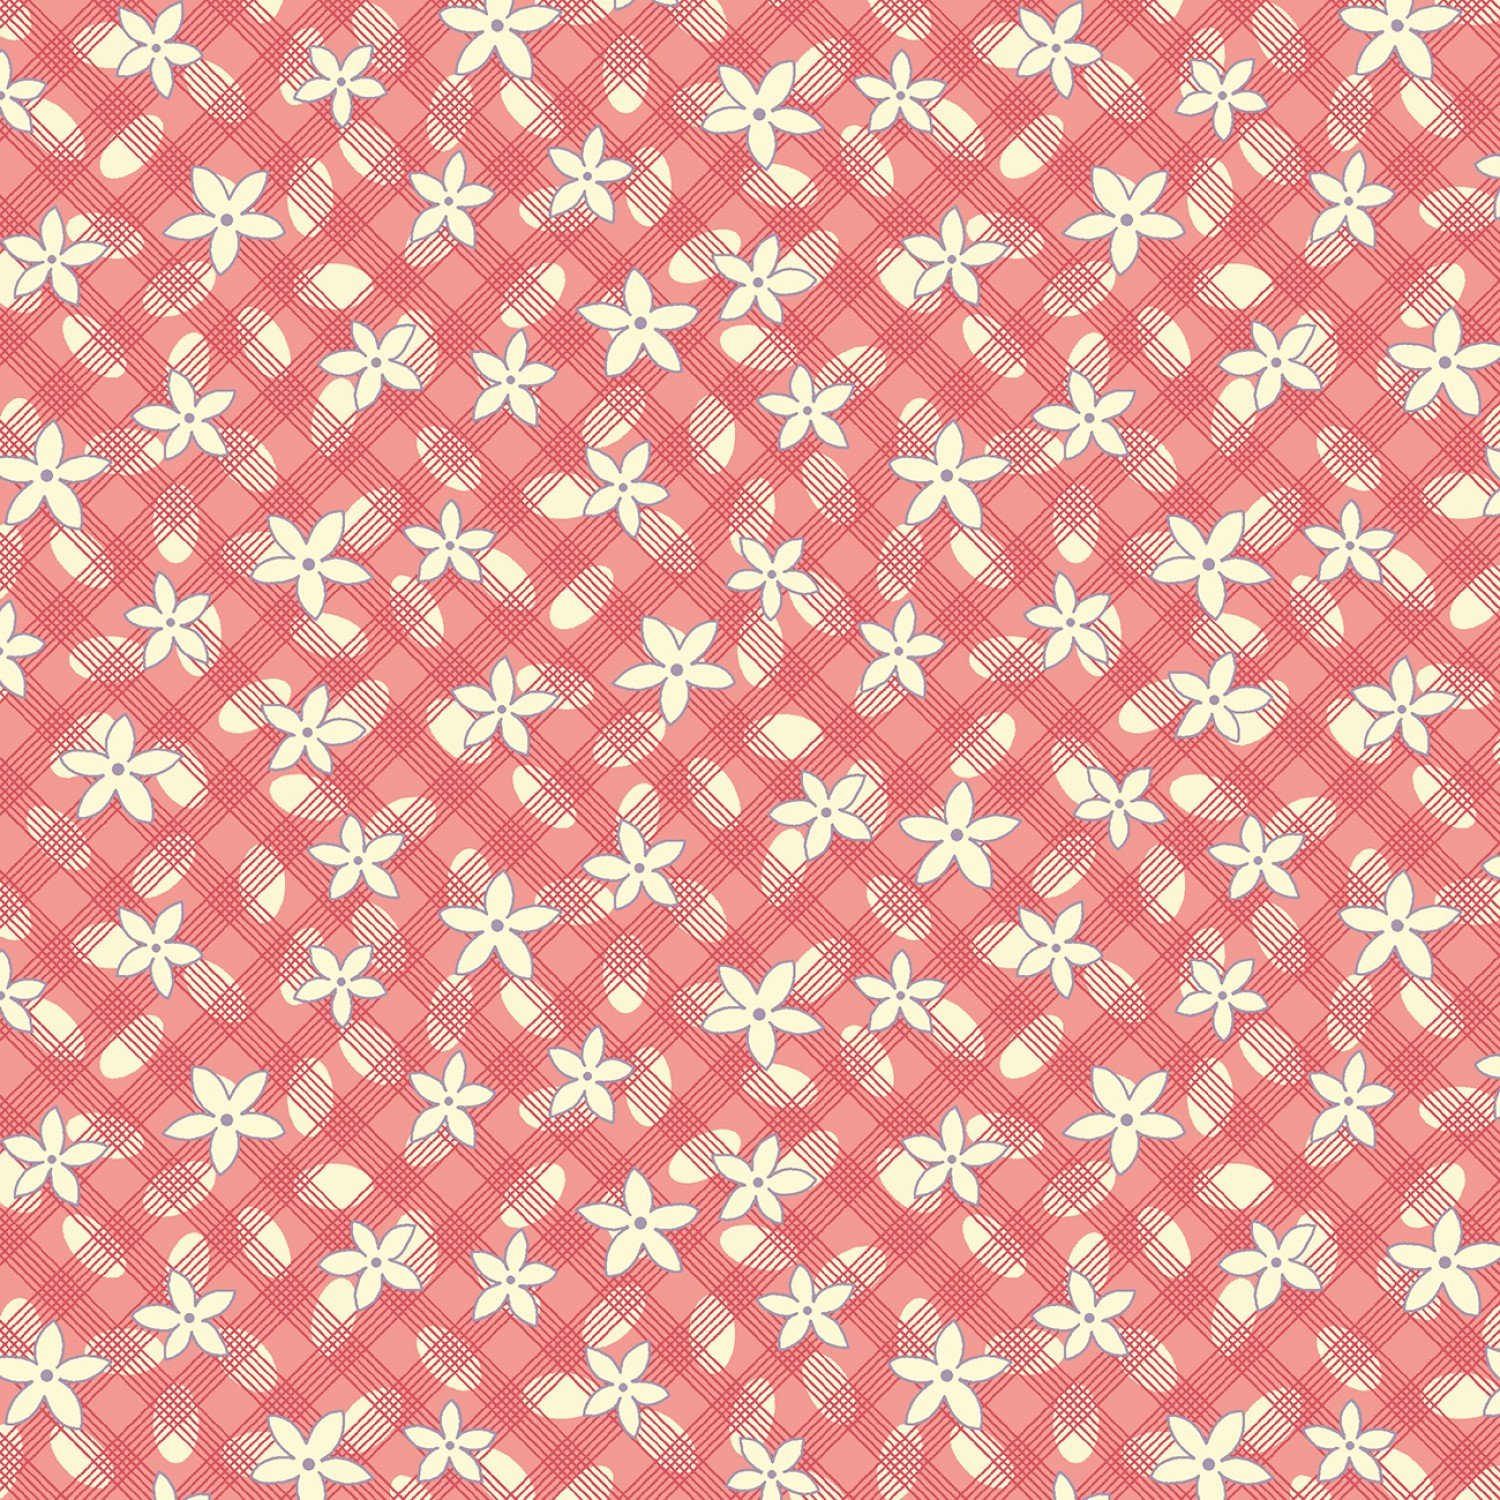 MF-Aunt Grace's Apron (1930's Reproduction) 0757-0126 Pink - Lazy Daisy